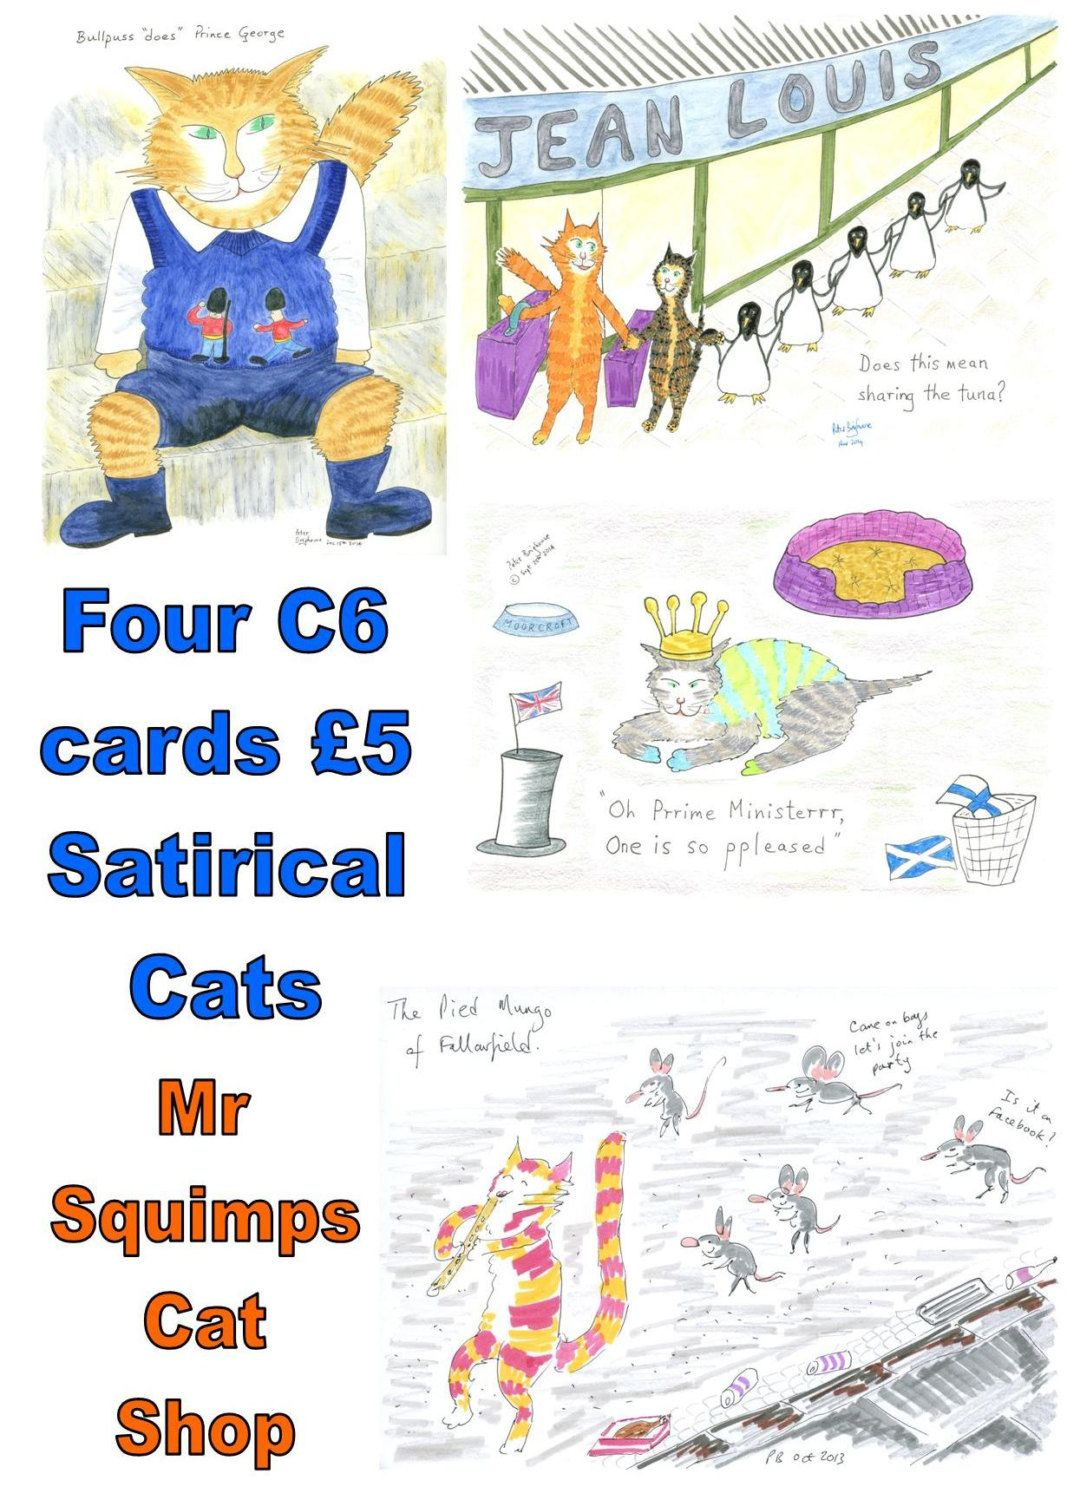 Pack four c6 cards ginger nuts satirical cats small blank pack four c6 cards ginger nuts satirical cats small blank greetings cards printondemand matt finish kristyandbryce Image collections